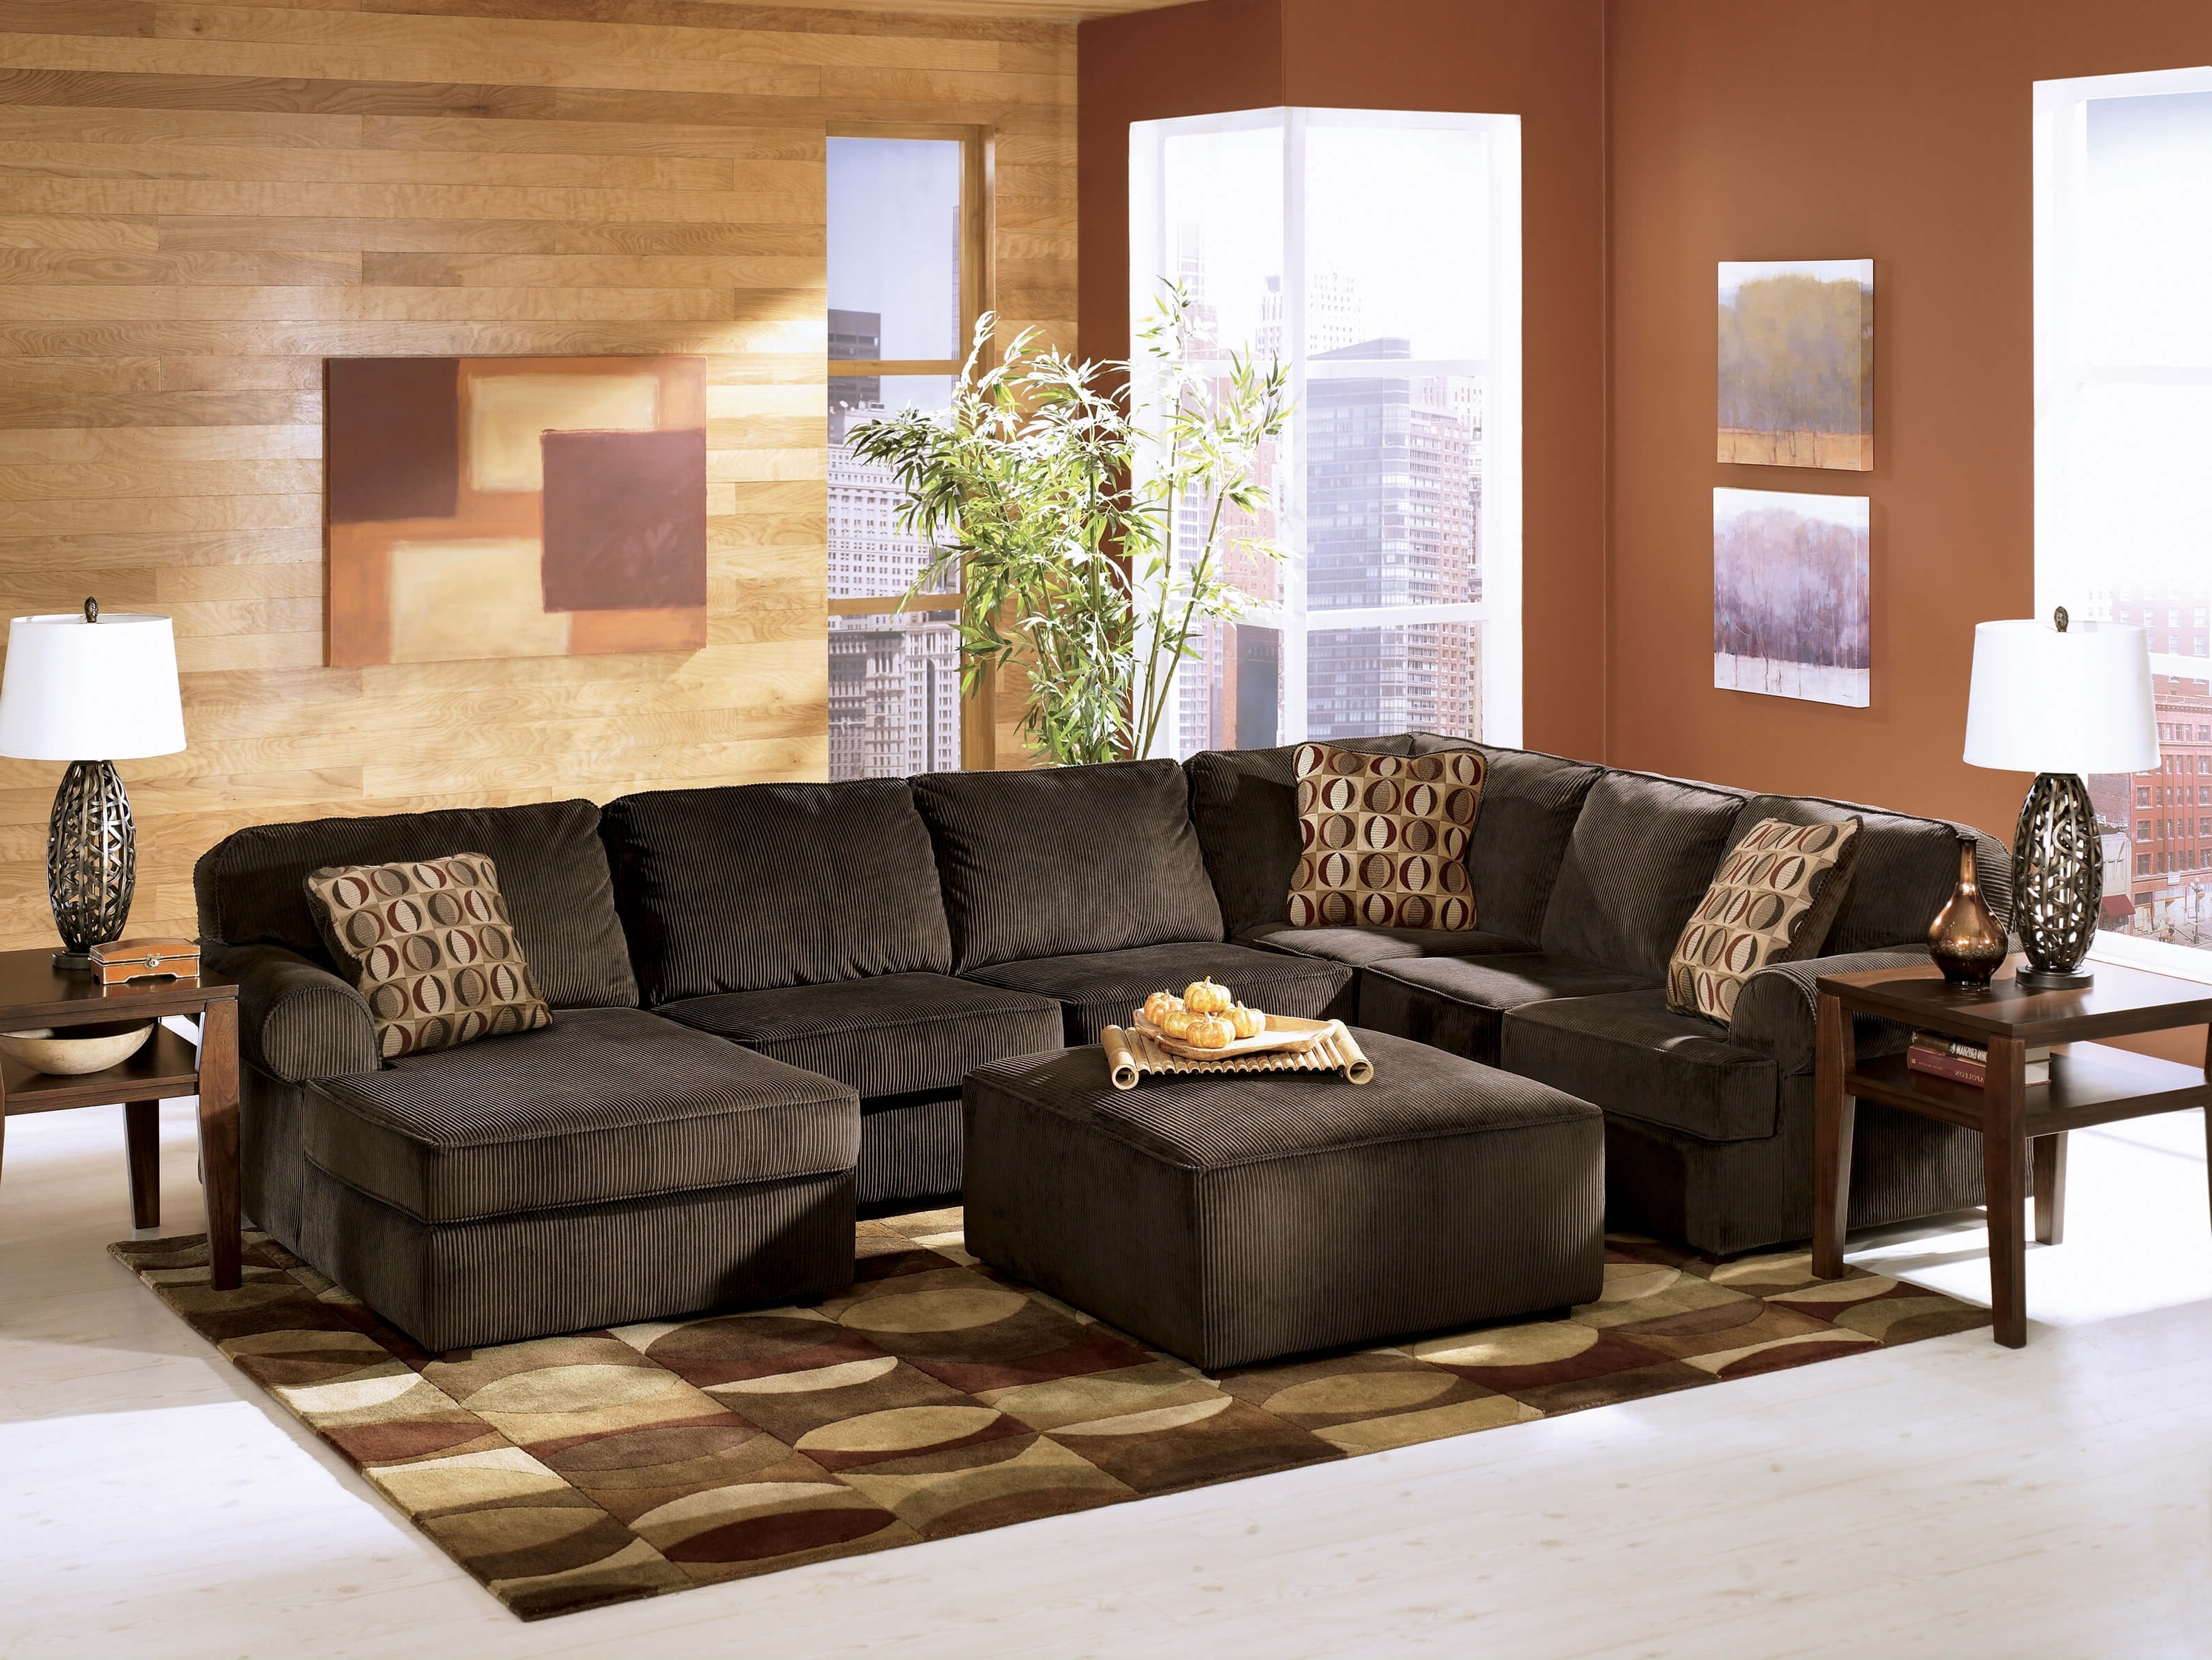 Sectional Sofas At Ashley Furniture Pertaining To Current Ashley Furniture Sectional Sofa, Ashley Furniture Brown Sectional (View 15 of 20)